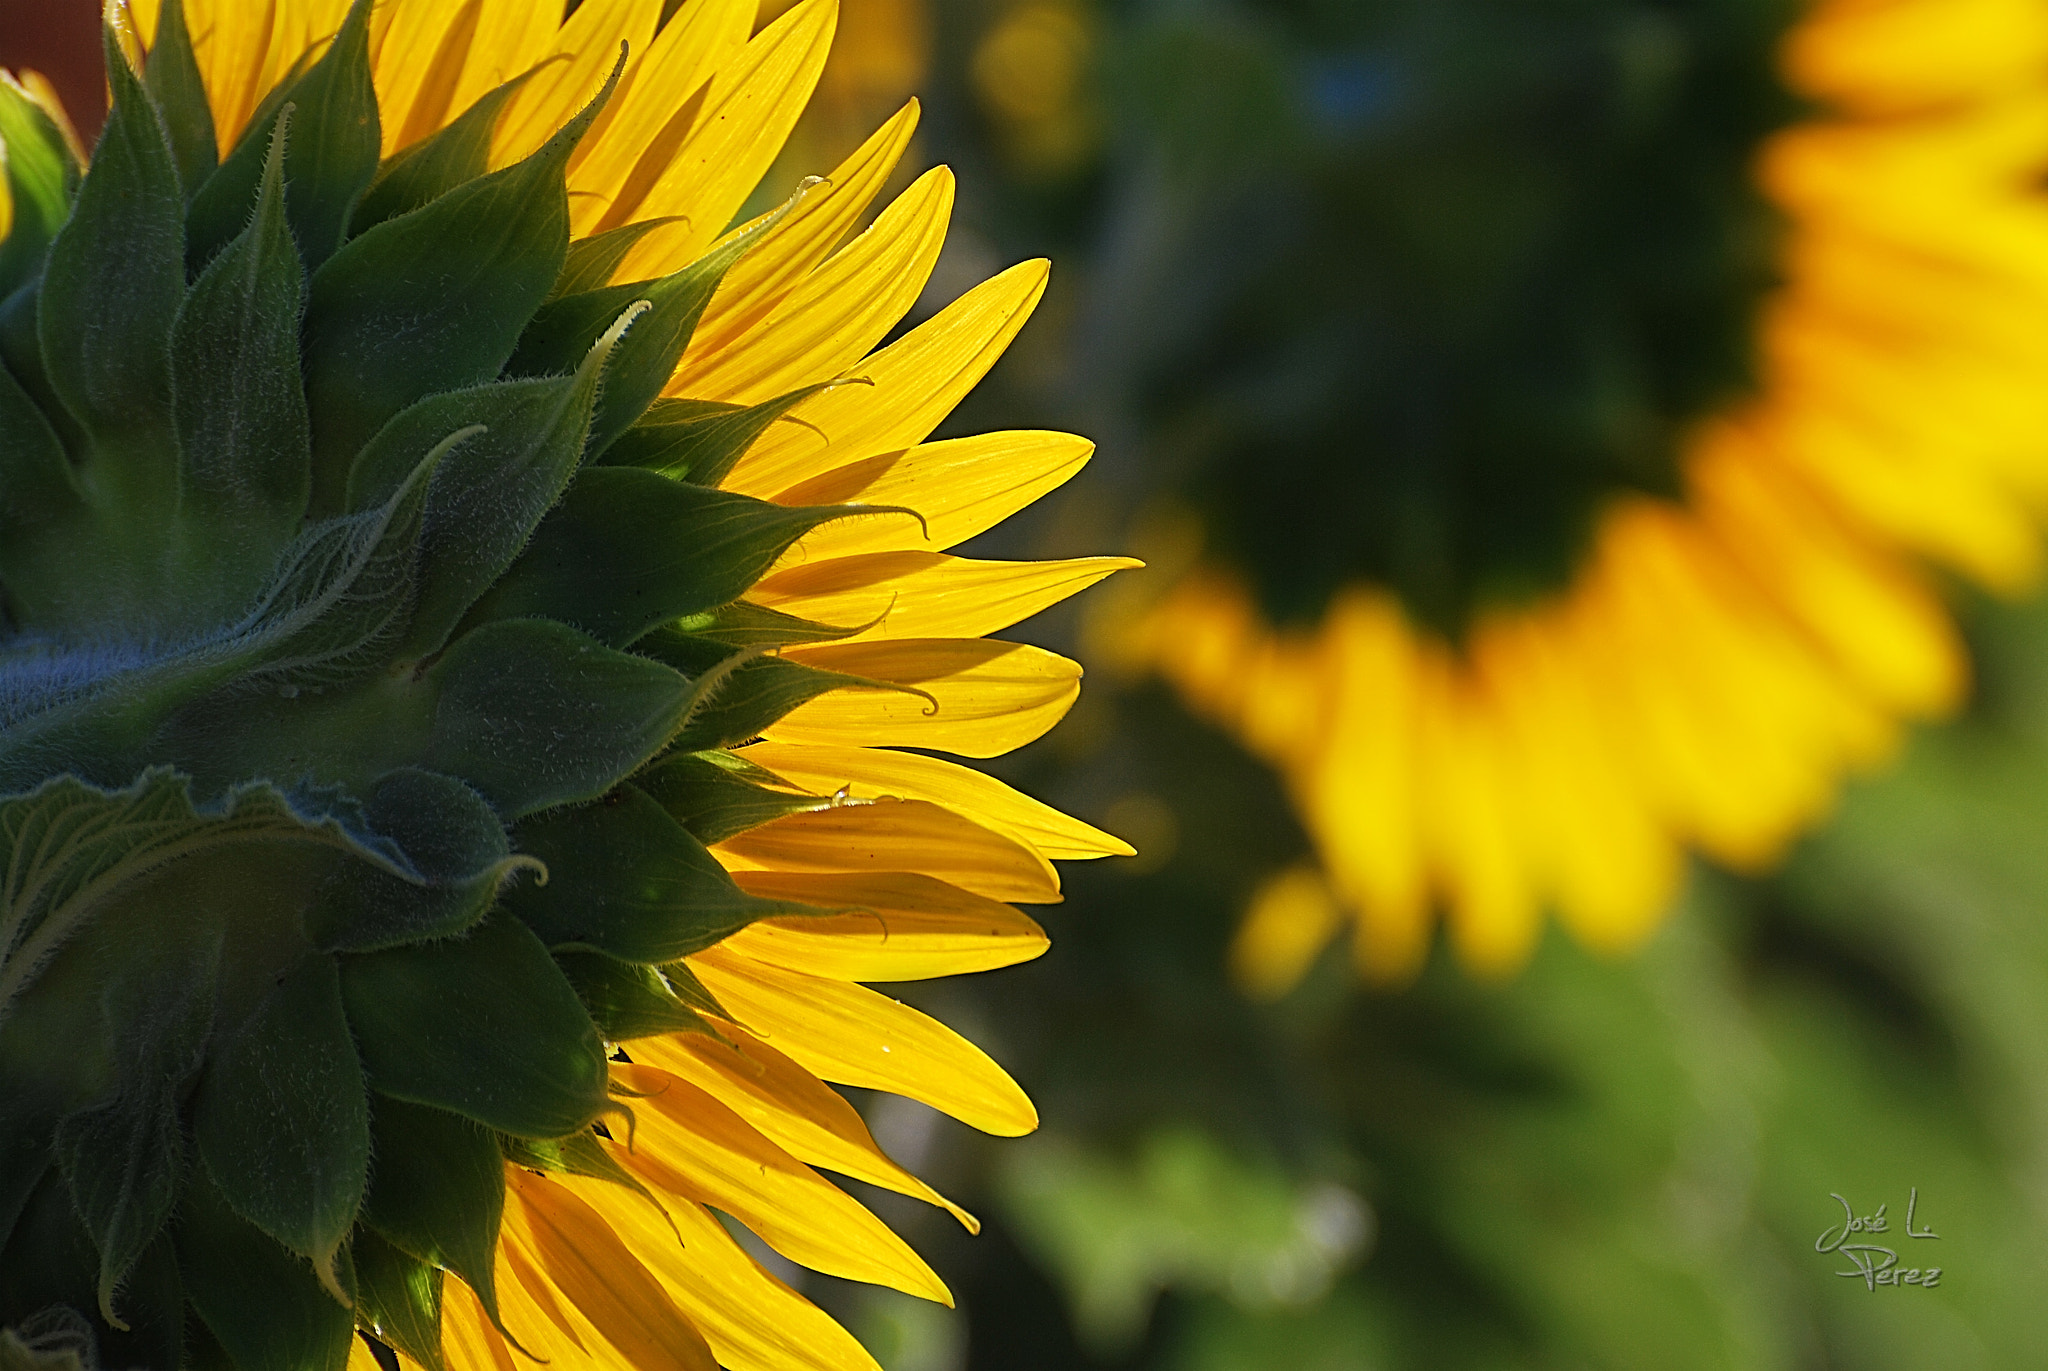 Photograph Sunflowers by Jose Luis Perez on 500px